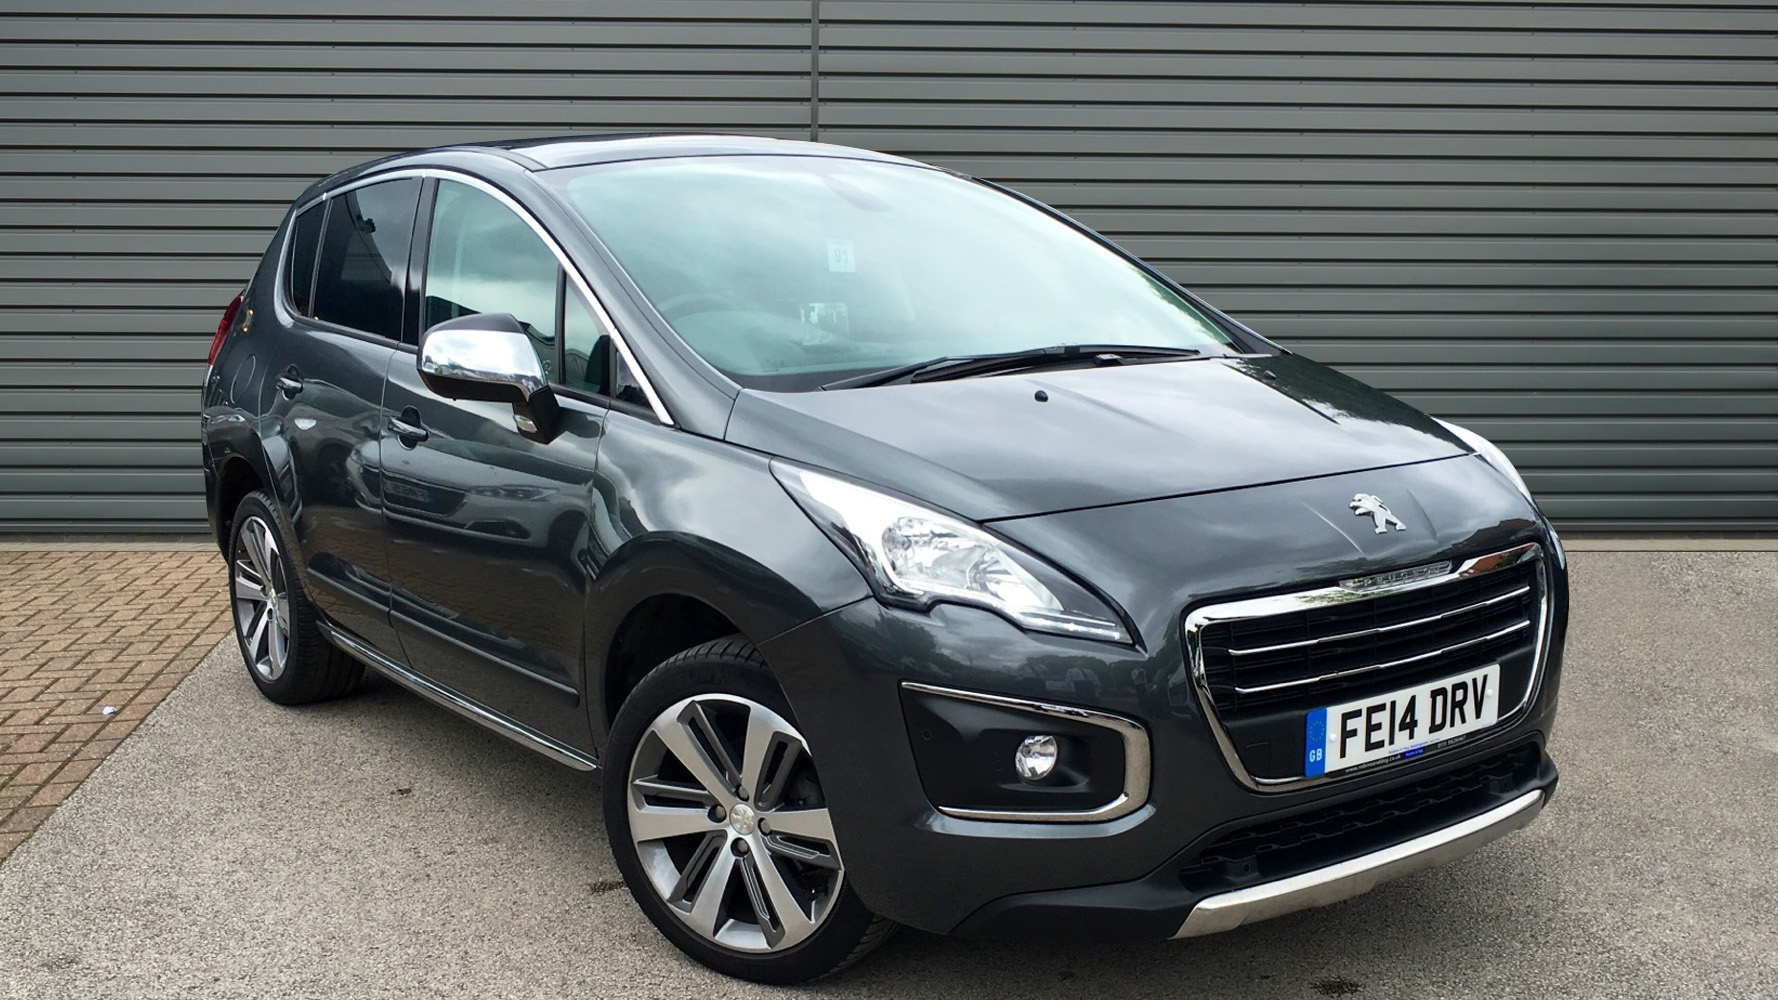 used peugeot 3008 hatchback 1 6 hdi fap allure 5dr 2014 fe14drv. Black Bedroom Furniture Sets. Home Design Ideas